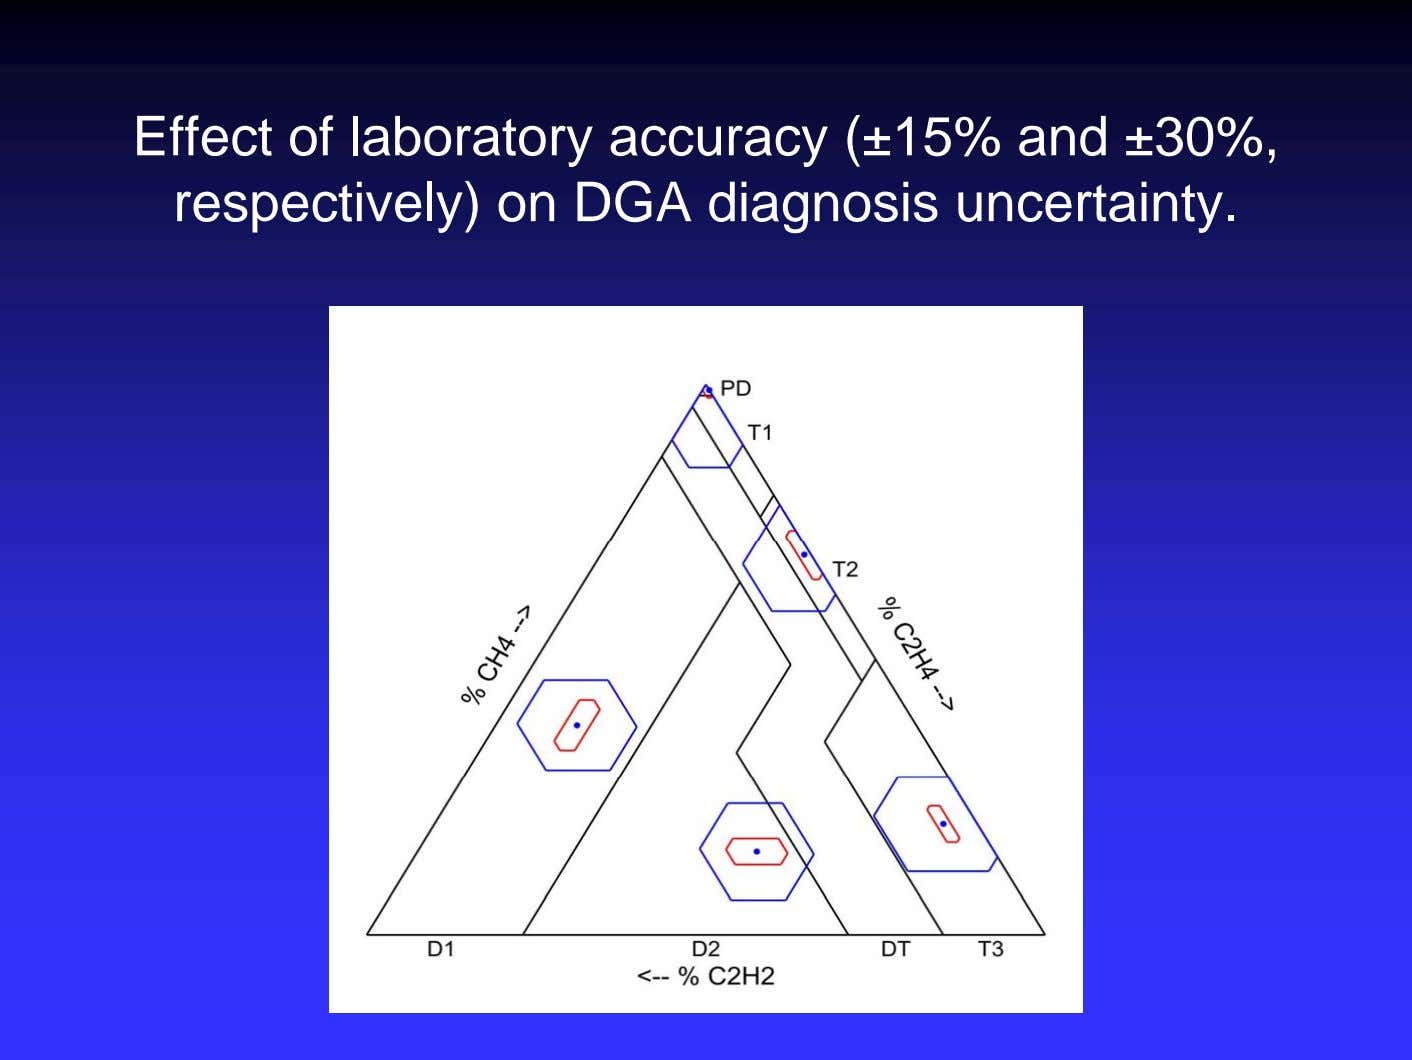 Effect of laboratory accuracy (±15% and ±30%, respectively) on DGA diagnosis uncertainty.